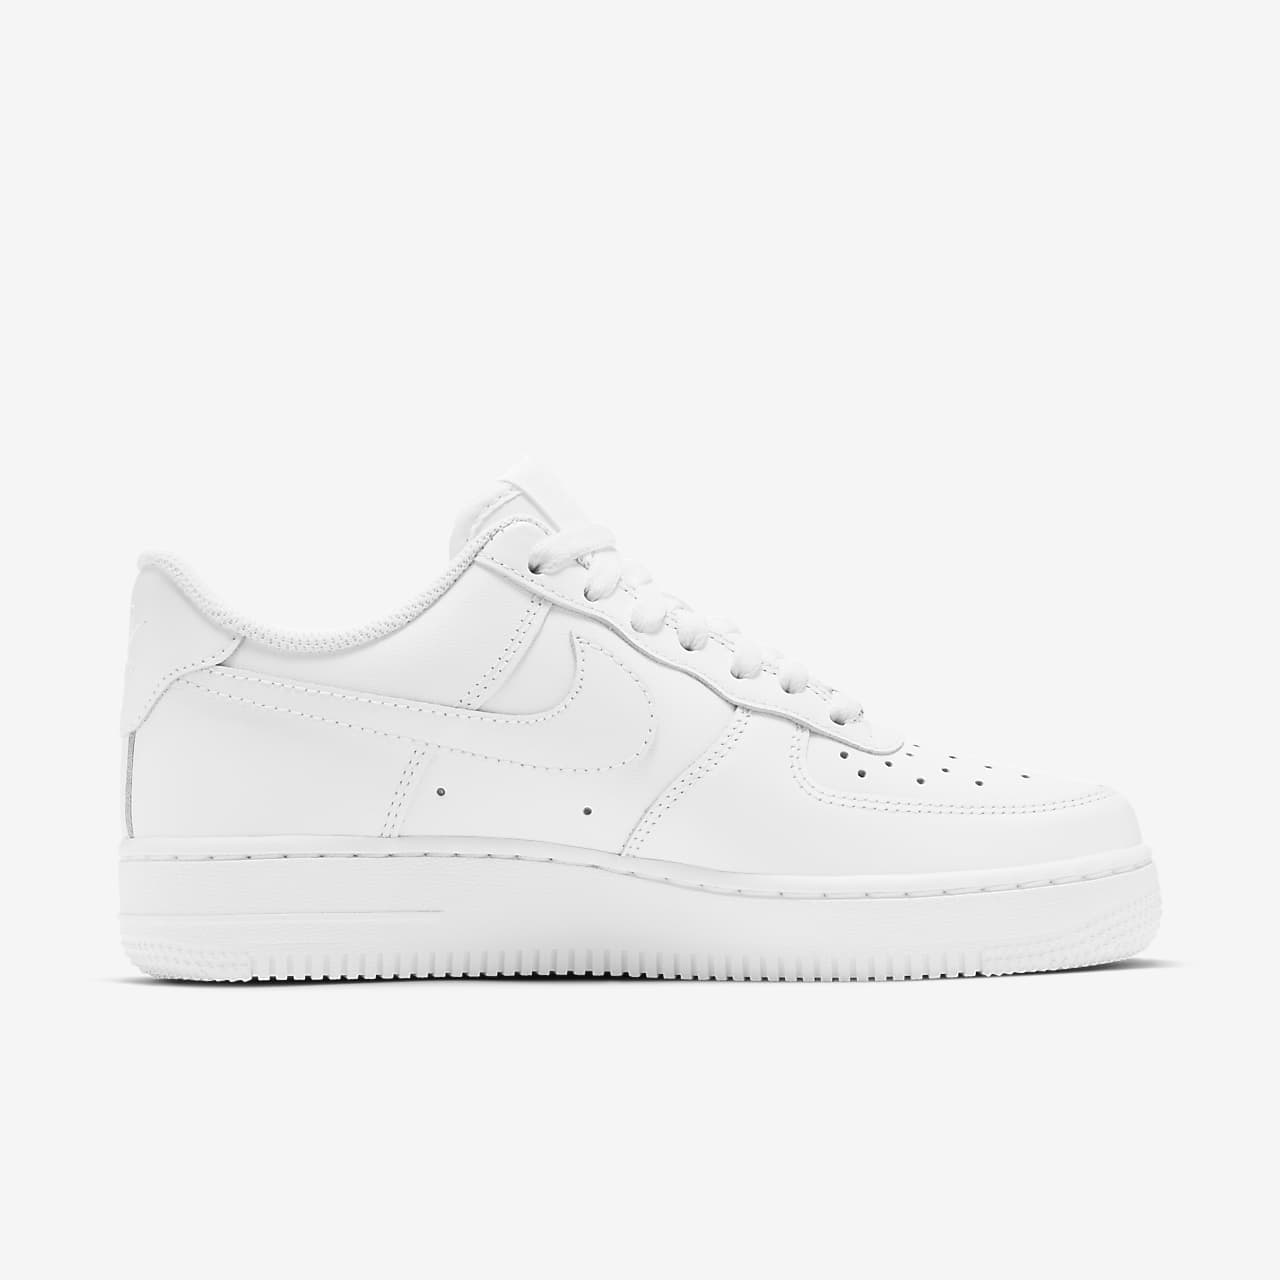 ... Chaussure Nike Air Force 1 '07 pour Femme